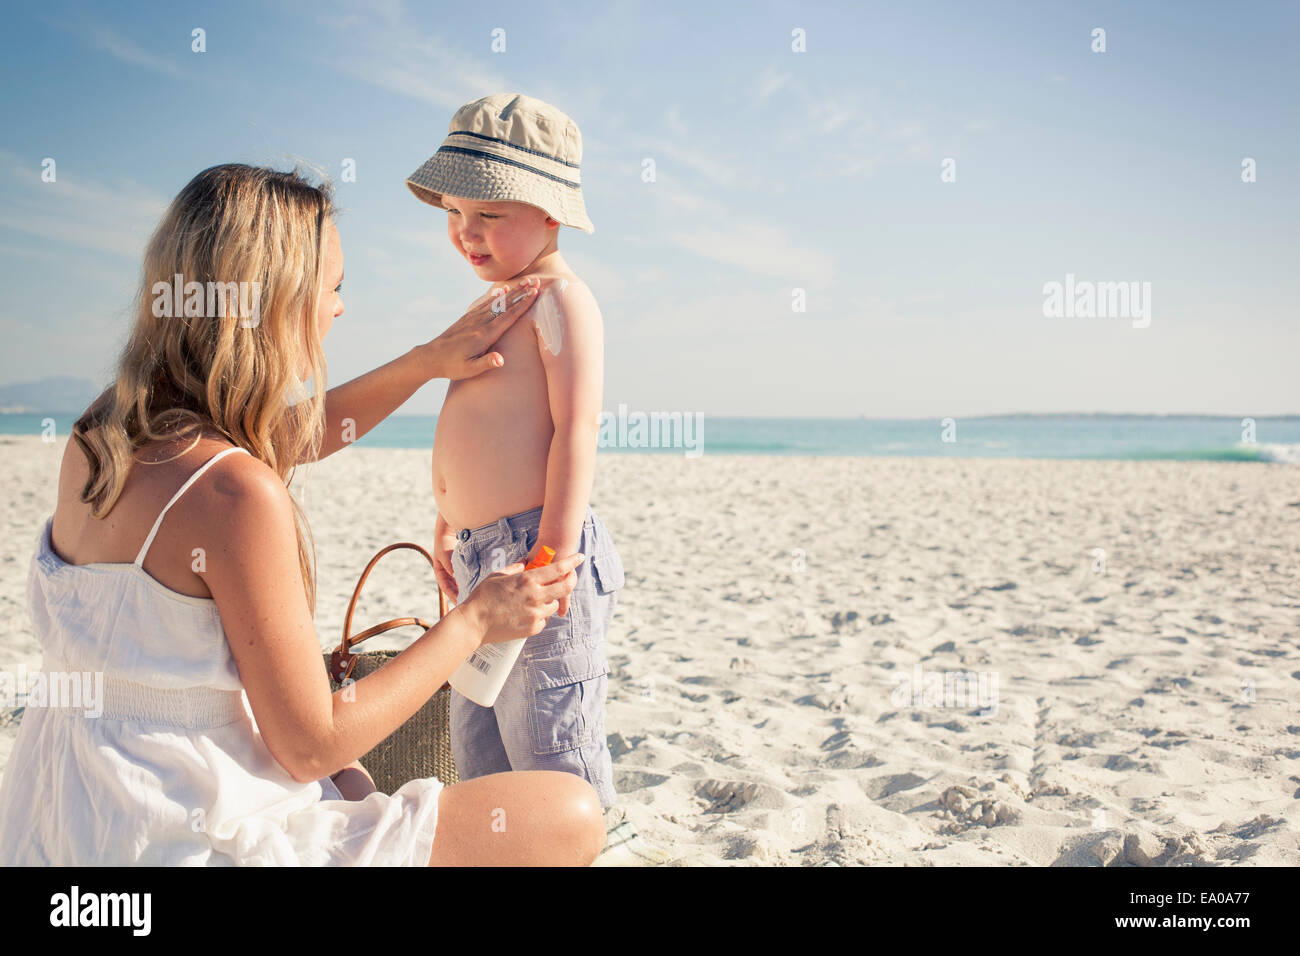 Mid adult mother applying sun lotion to young son on beach, Cape Town, Western Cape, South Africa - Stock Image